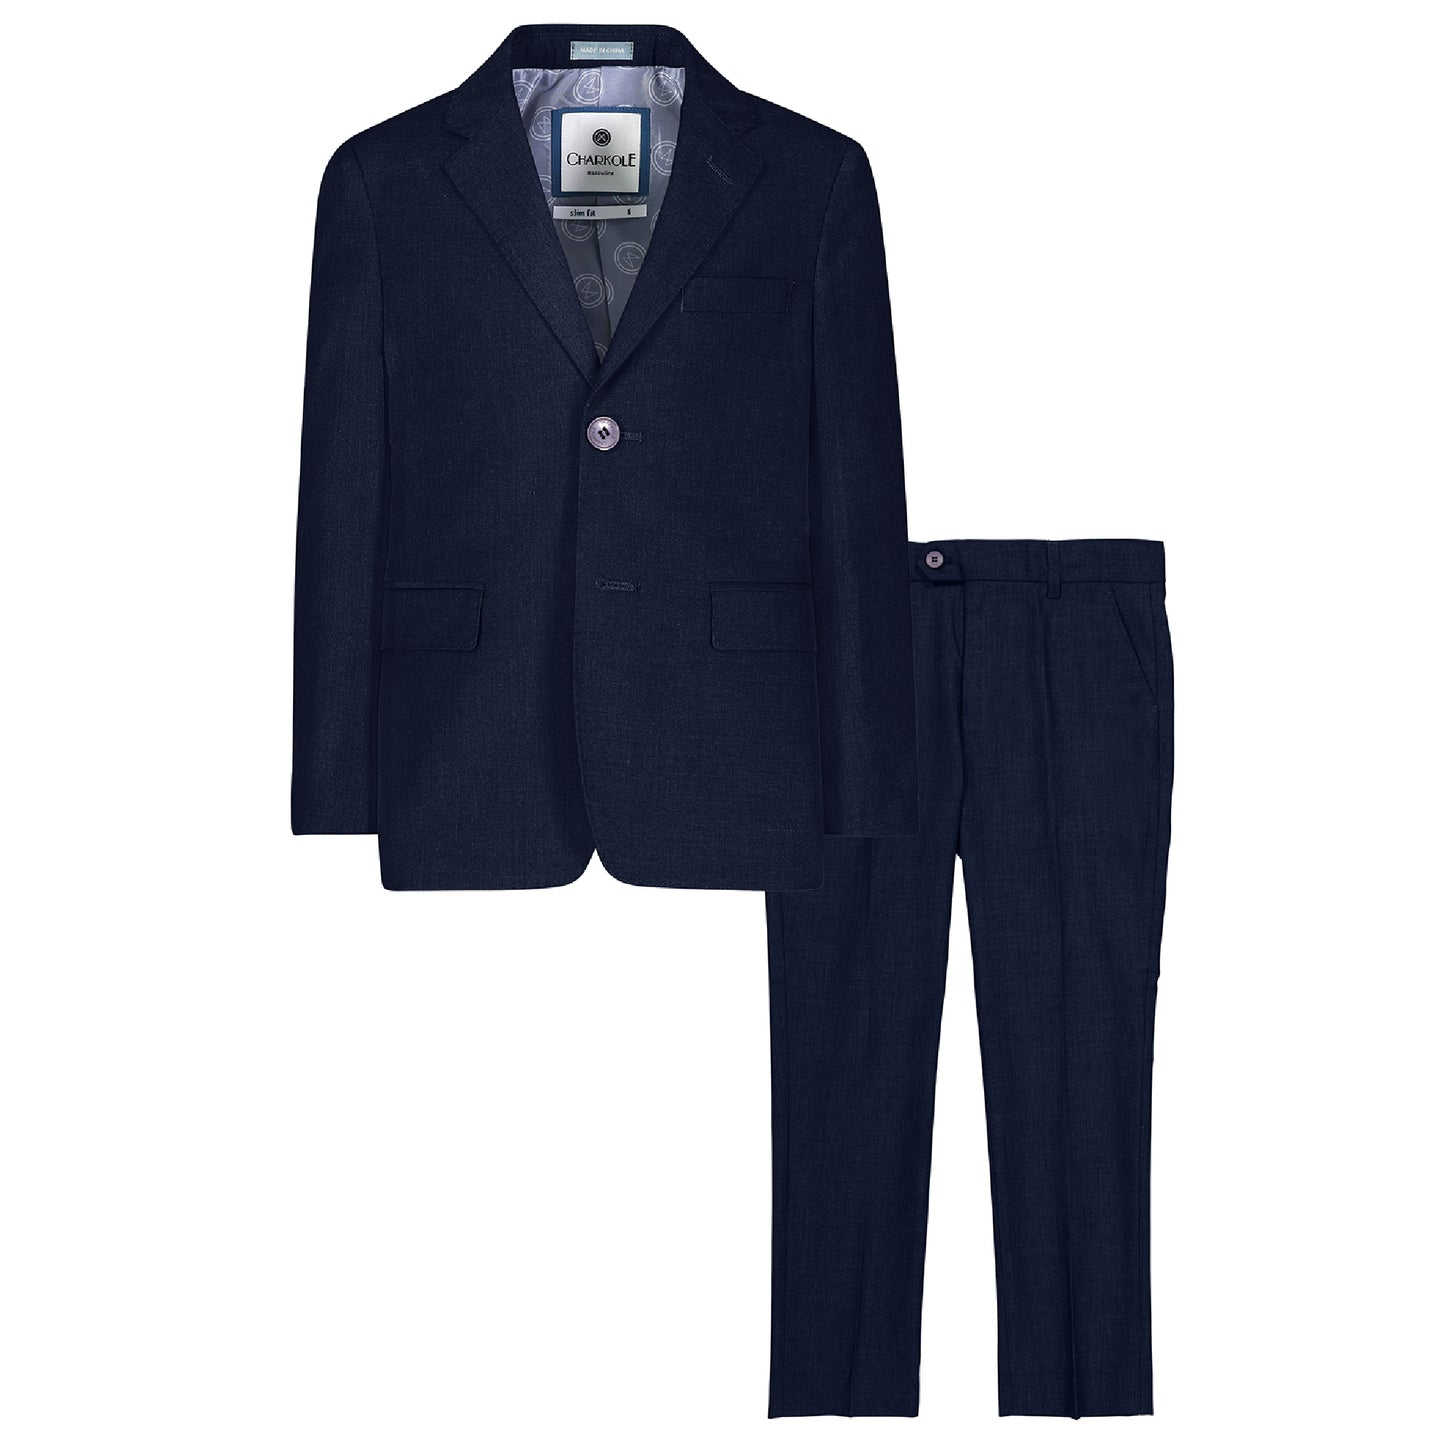 Navy Two Piece Suit